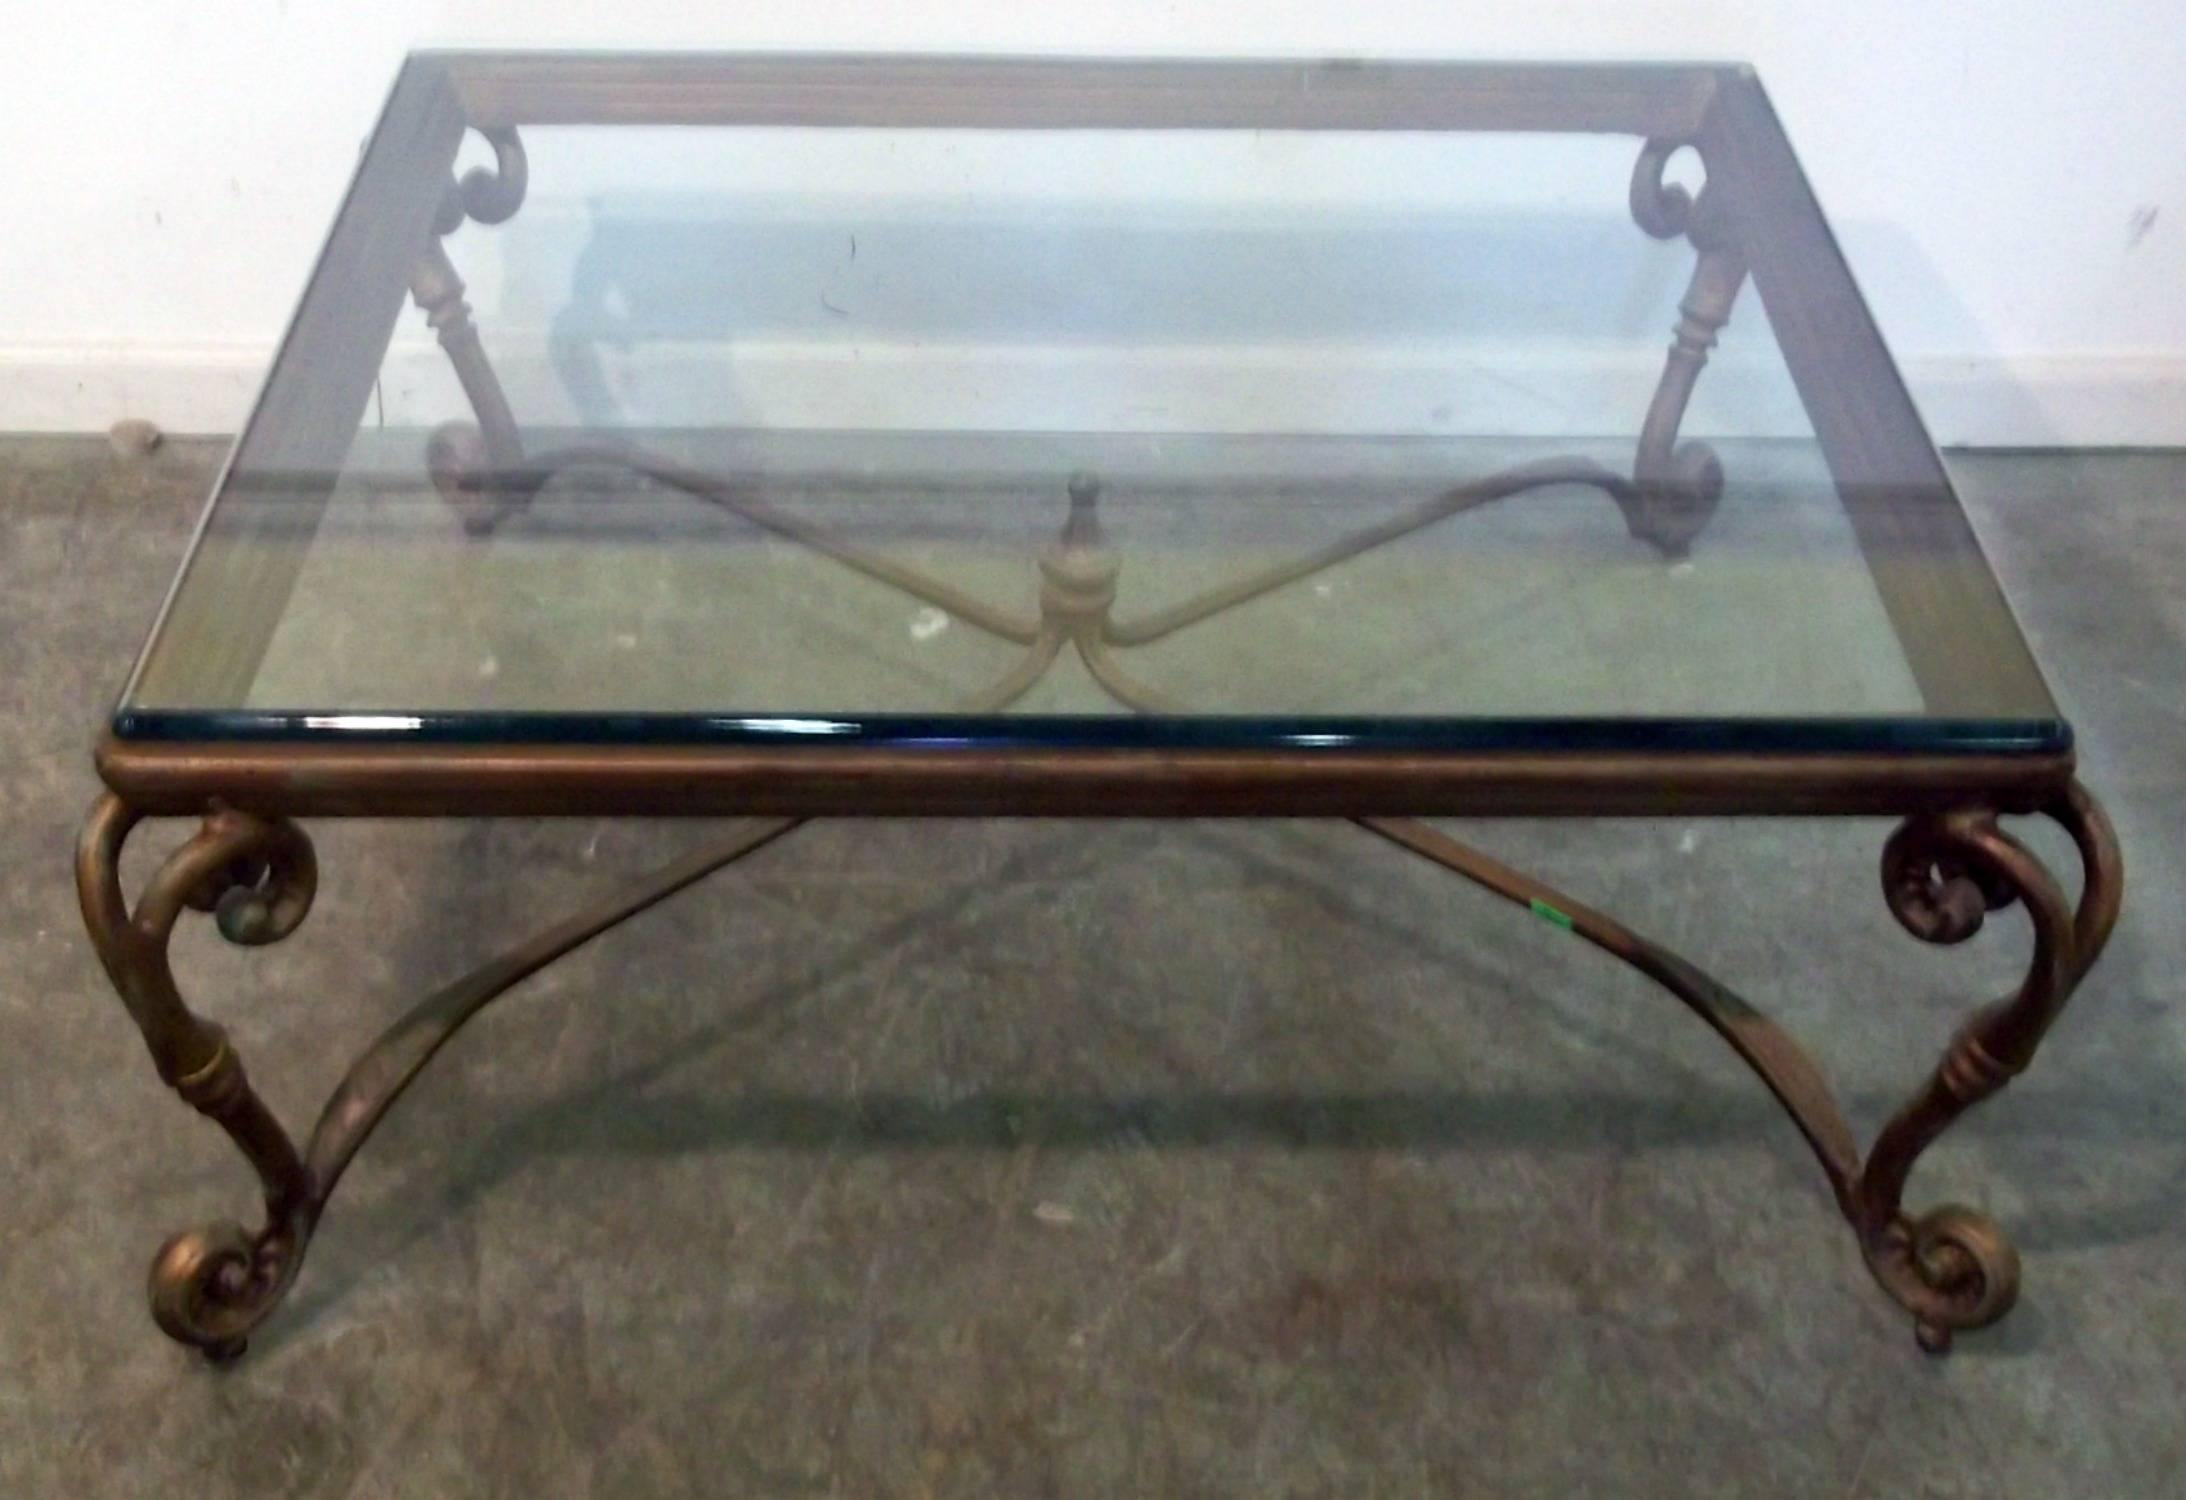 Image Gallery of Glass Square Coffee Tables View 11 of 30 s